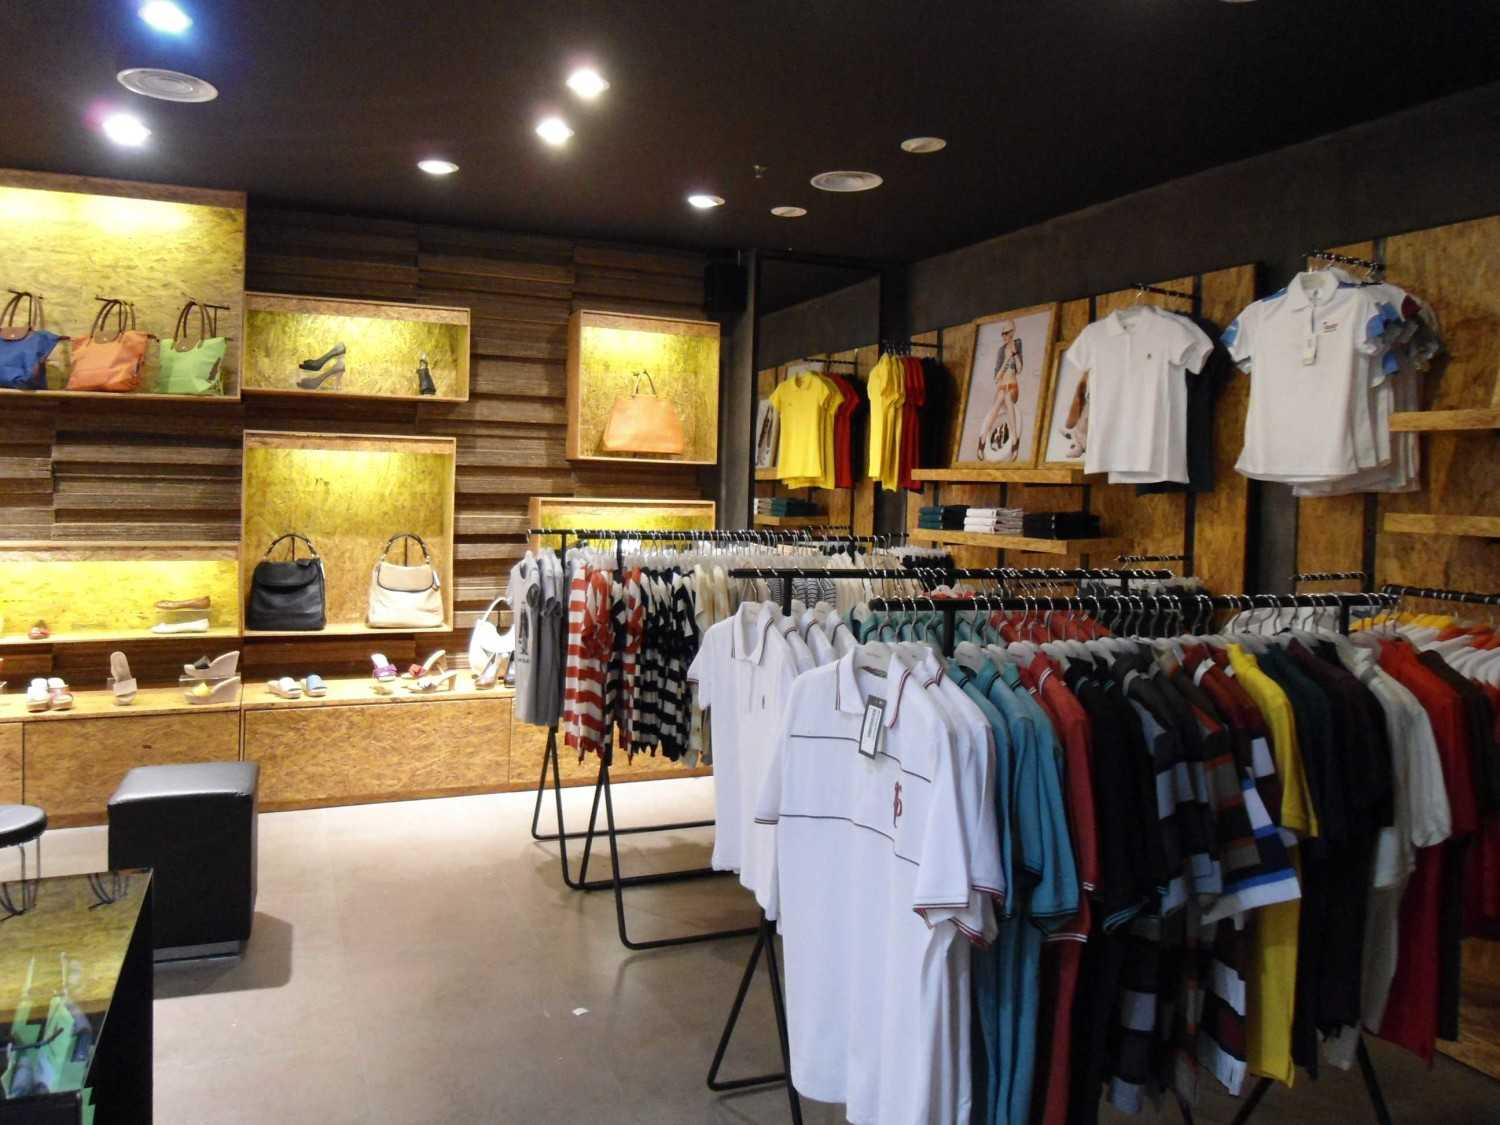 Canvas Mkc Store Hush Puppies Bali Bali Display Minimalis 21079